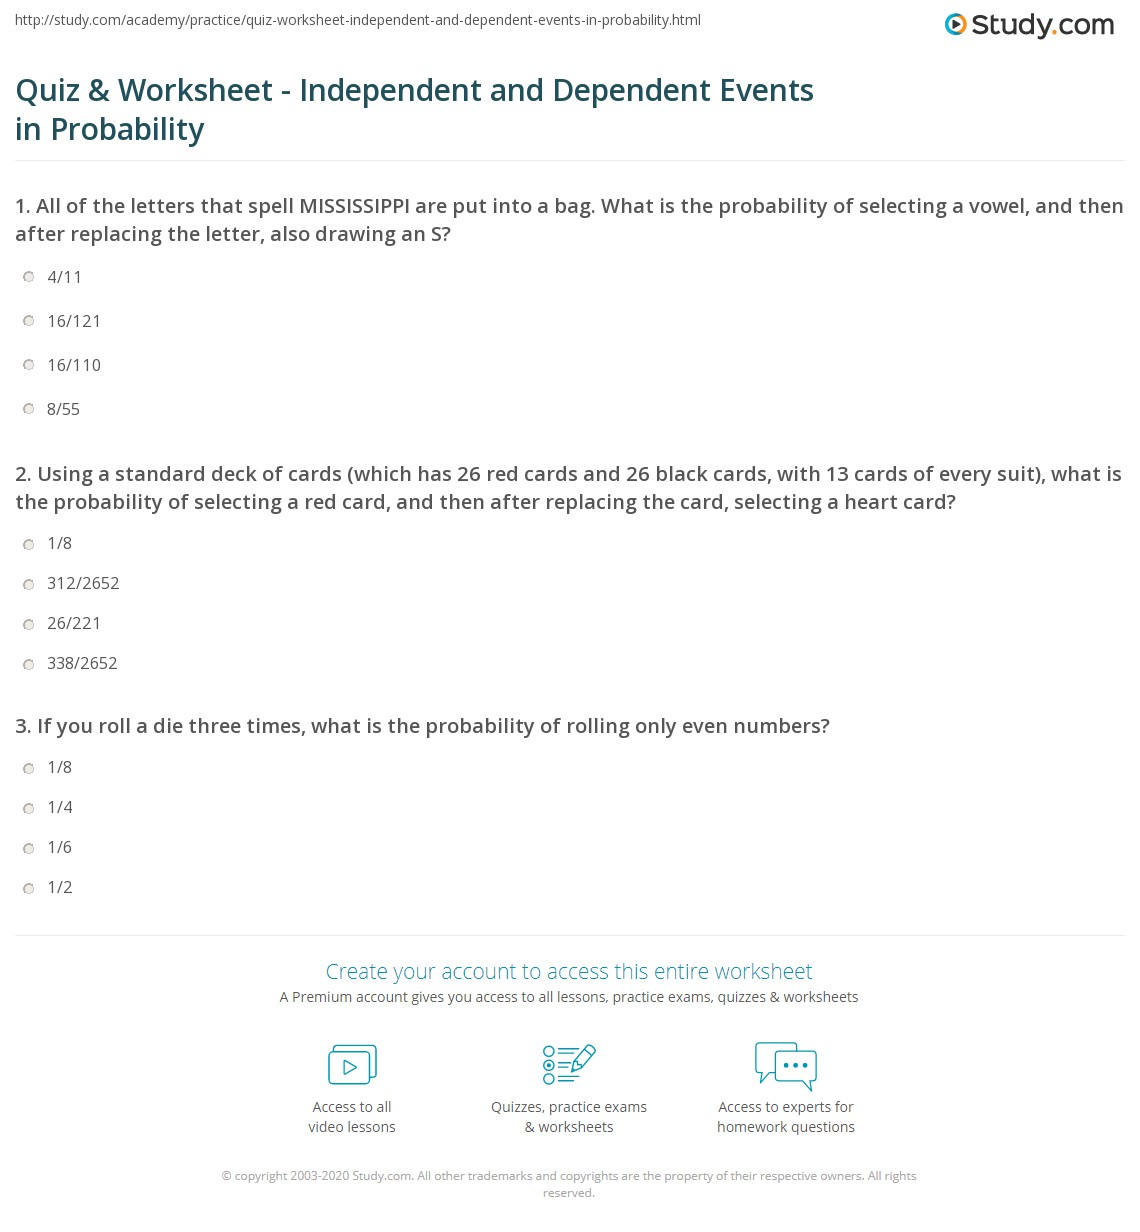 Worksheets Probability Independent And Dependent Events Worksheet With Answers quiz worksheet independent and dependent events in probability print of worksheet